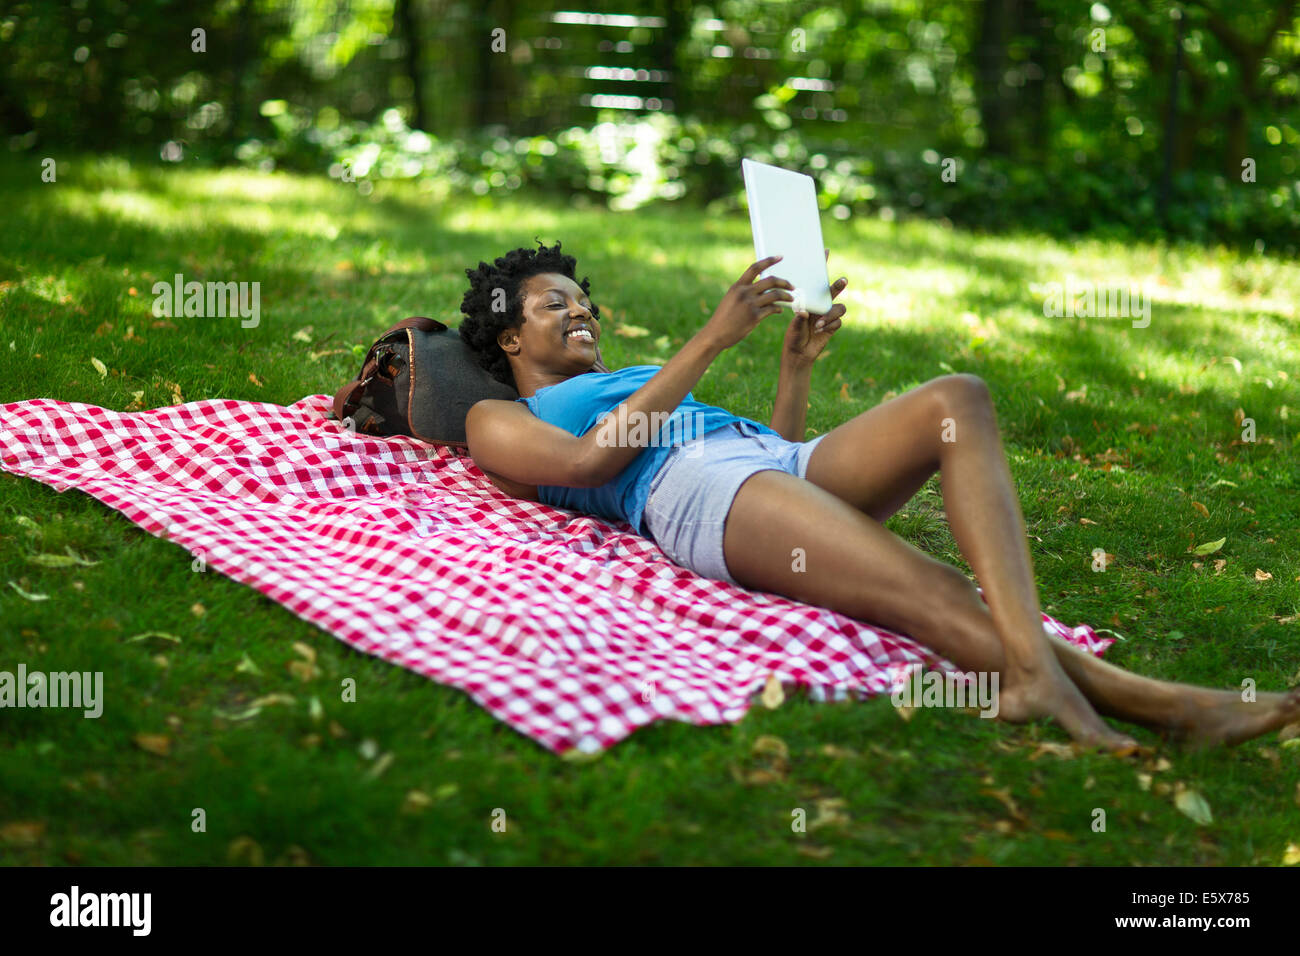 Young woman lying in park looking up at digital tablet - Stock Image